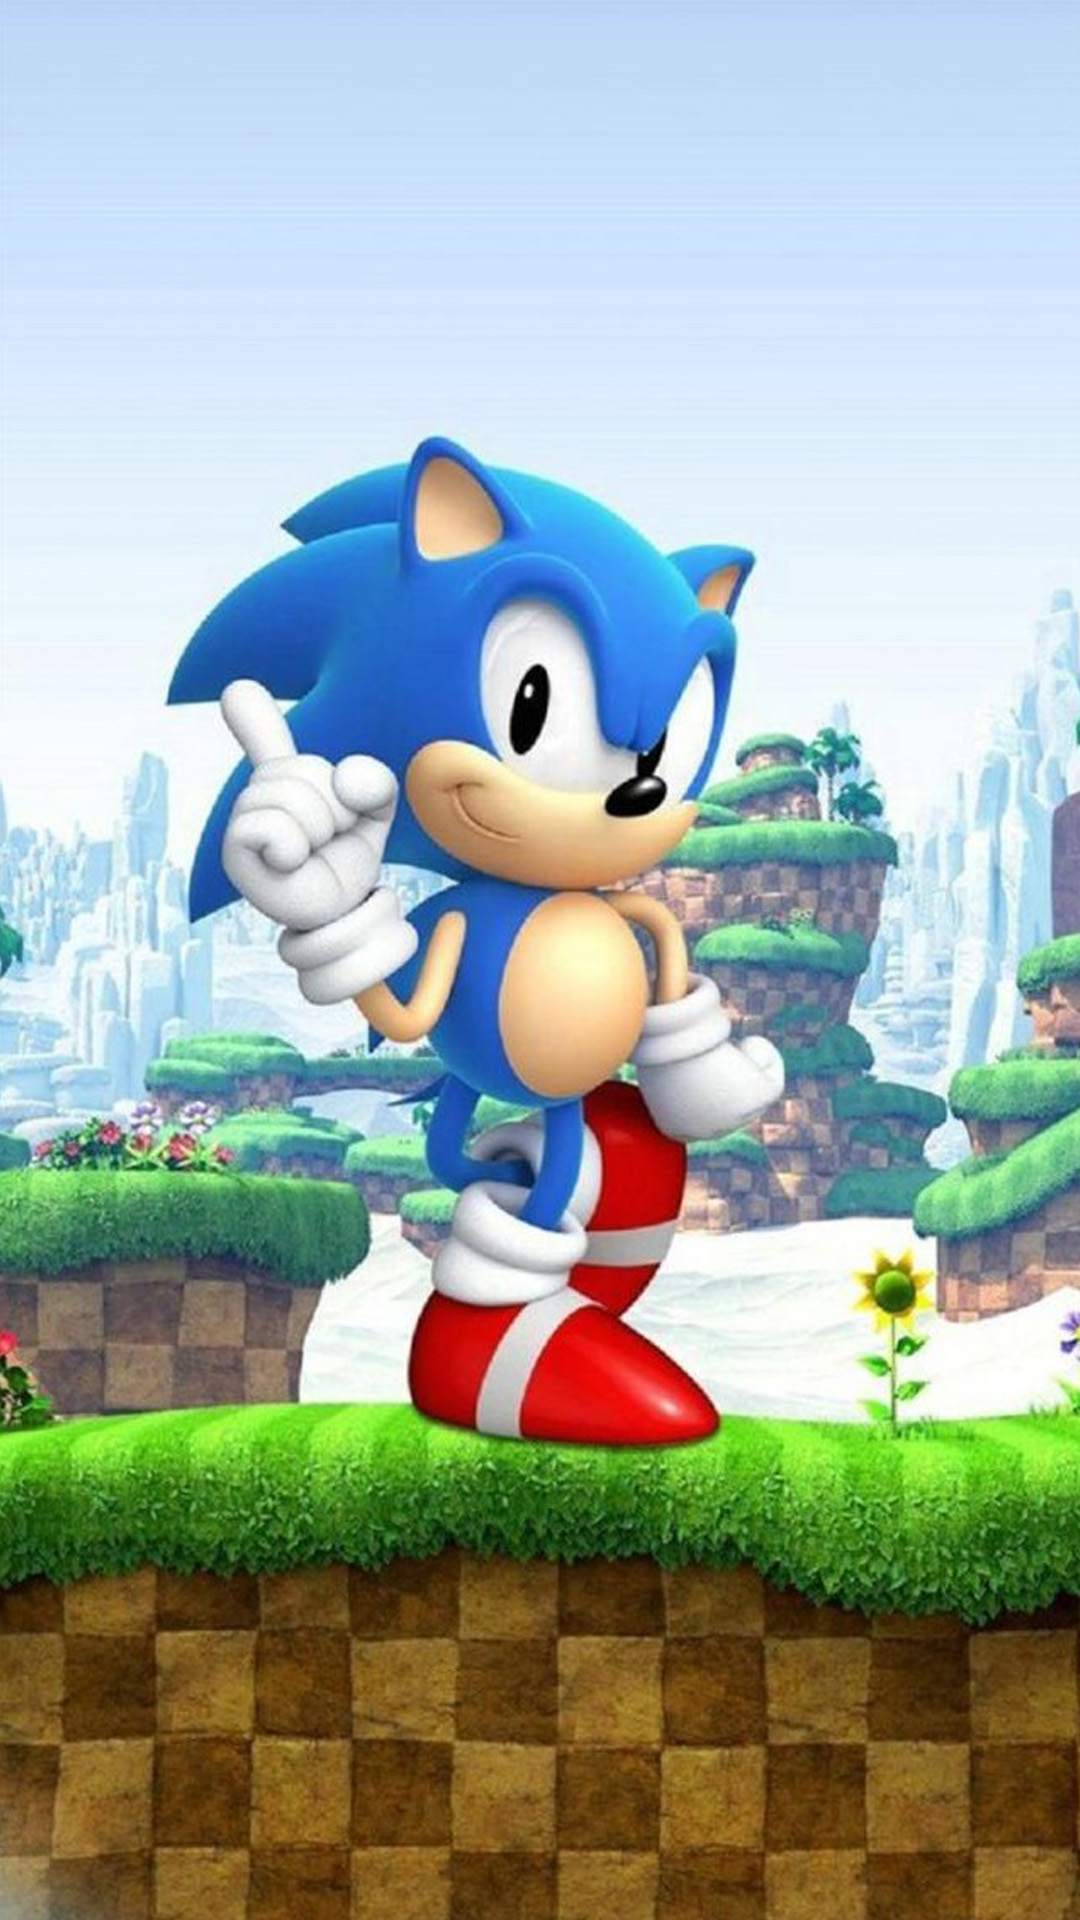 sonic the hedgehog 3d android wallpaper - android hd wallpapers